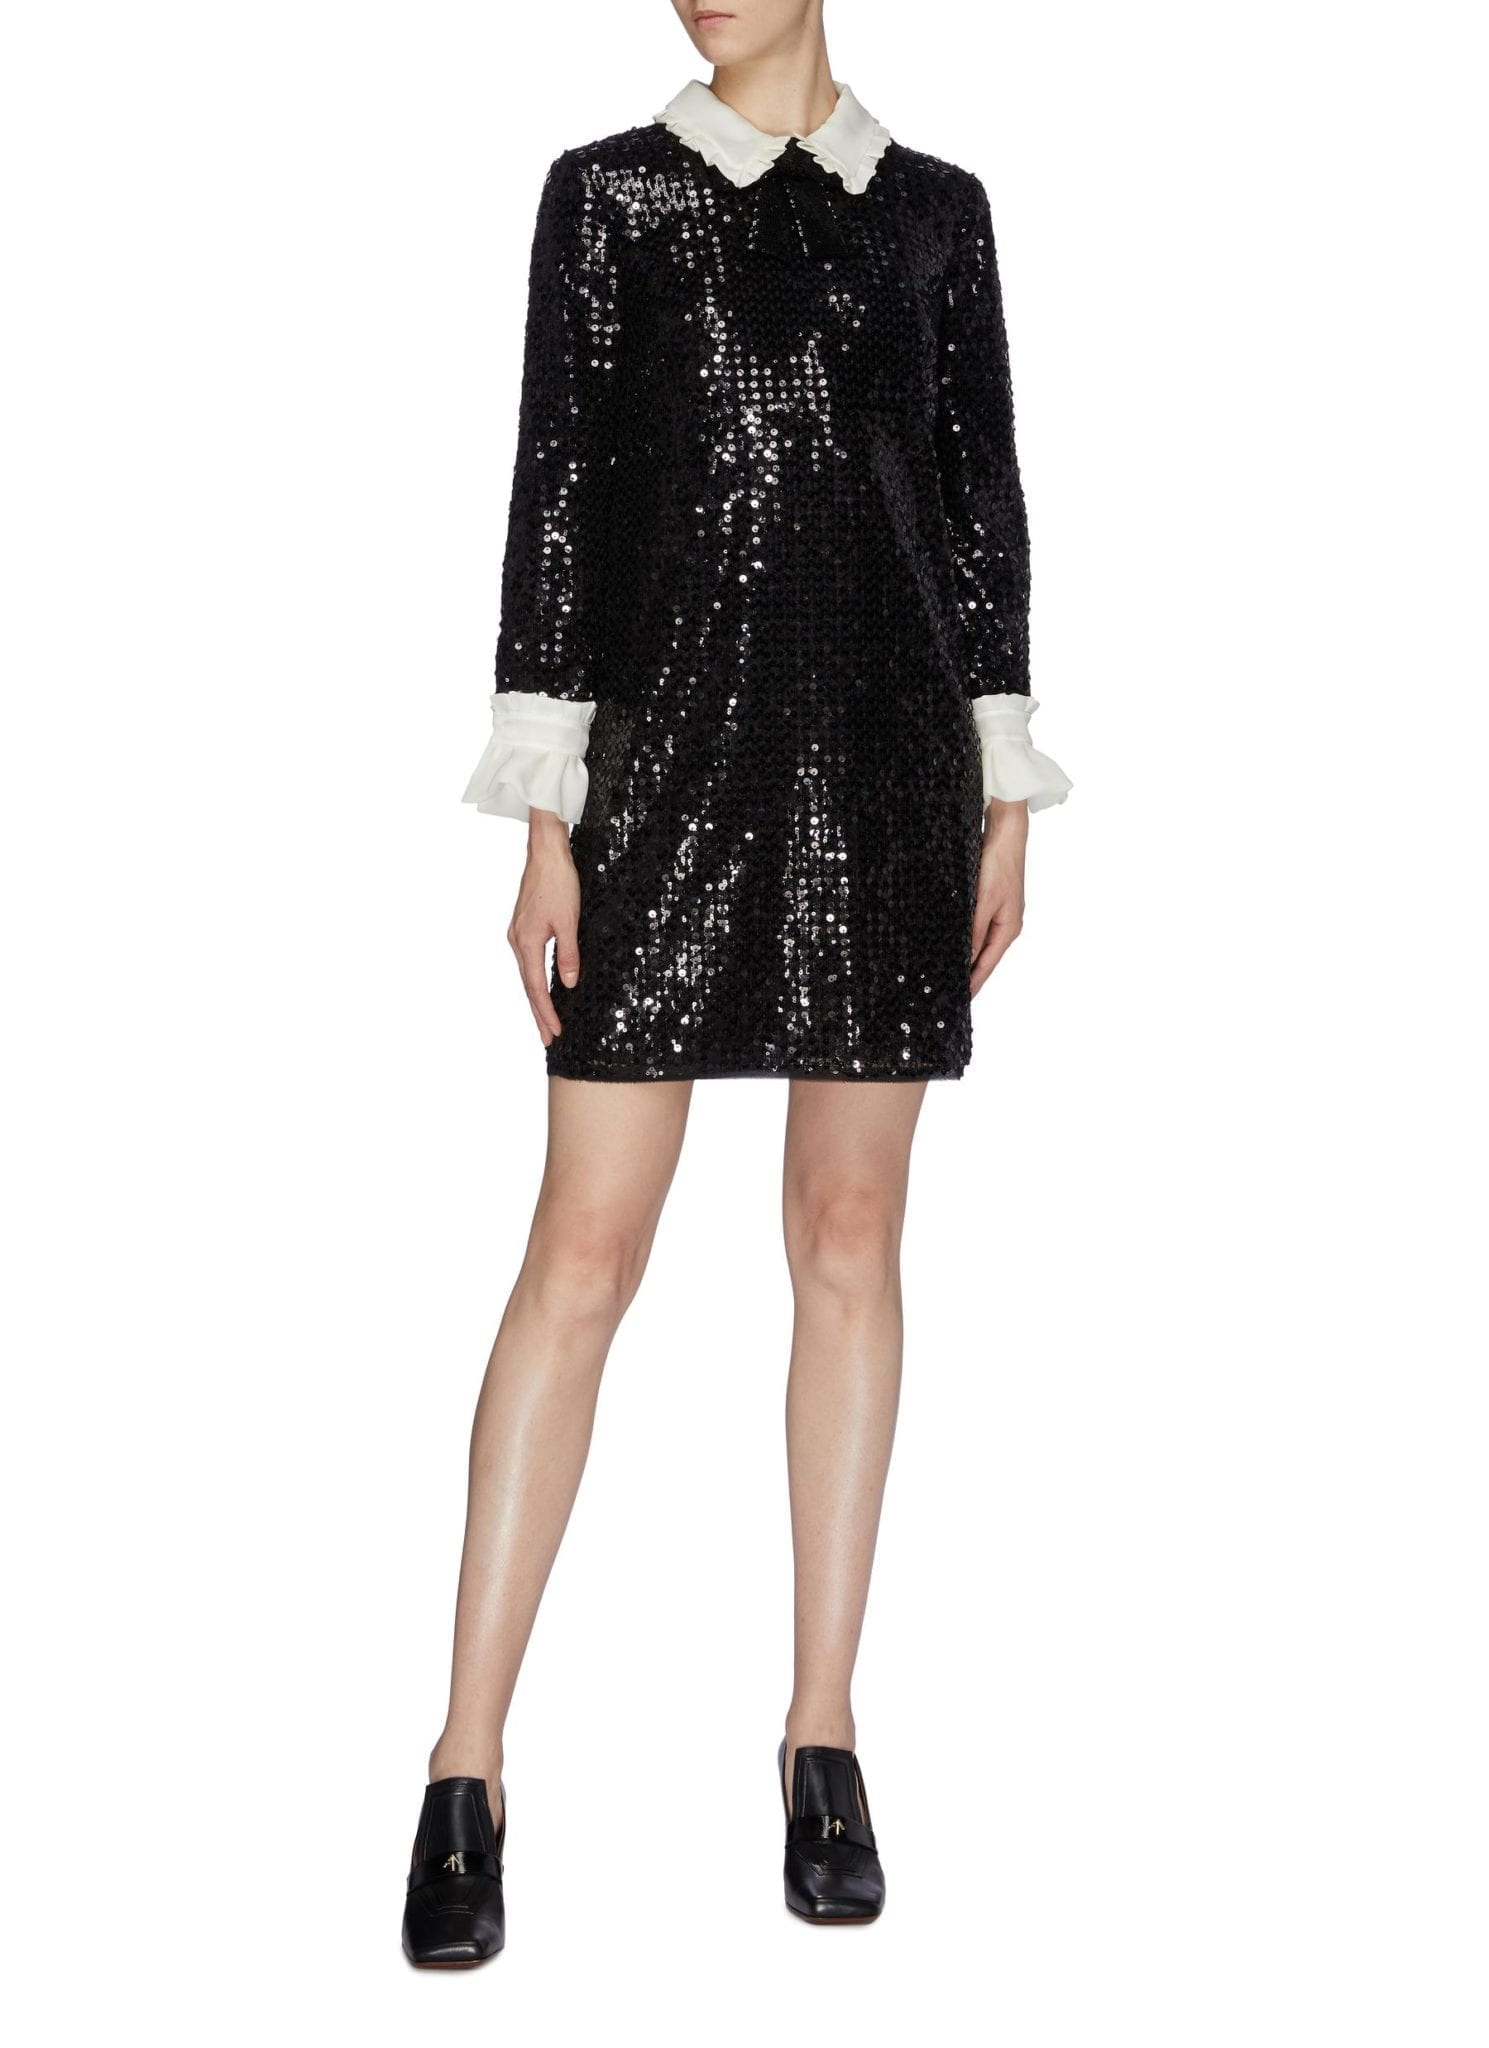 MIU MIU Chiffon Ruffle Collar Sequin Dress